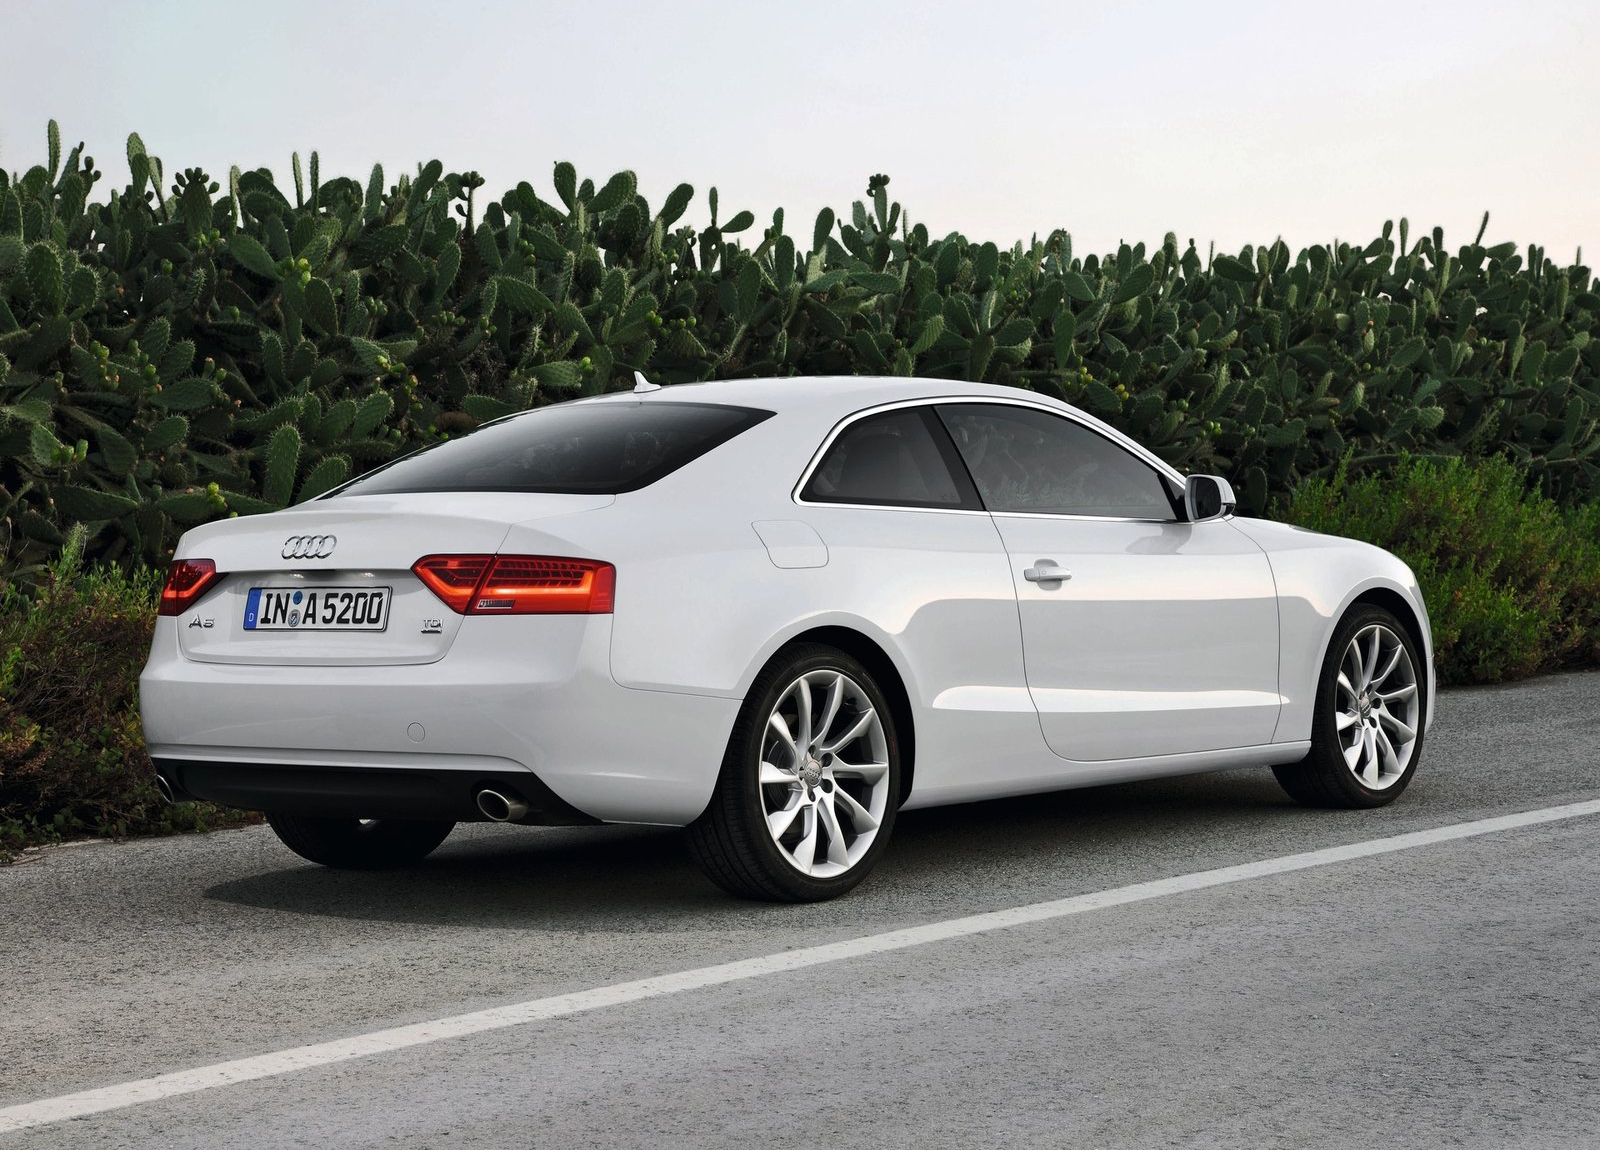 Audi A5 Hd Wallpapers The World Of Audi